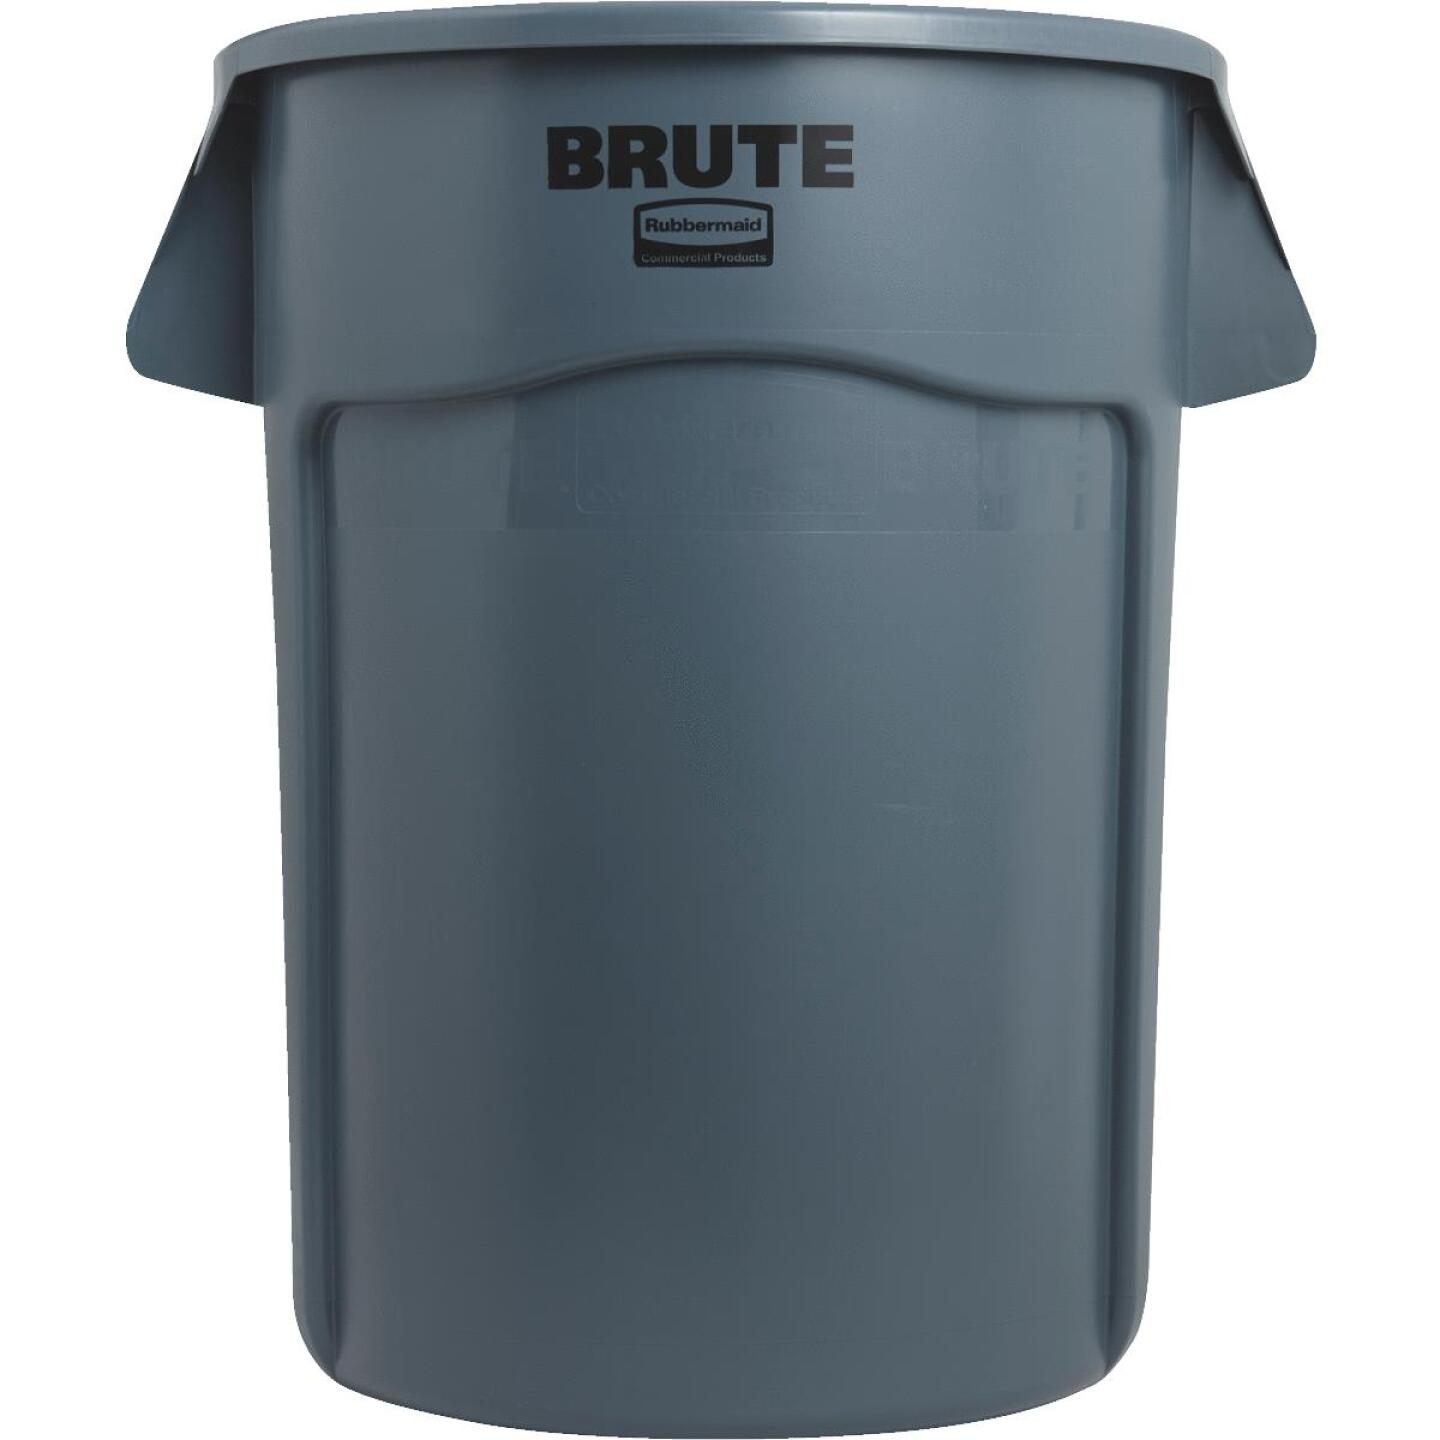 Rubbermaid Commercial Brute 44 Gal. Plastic Commercial Trash Can Image 2